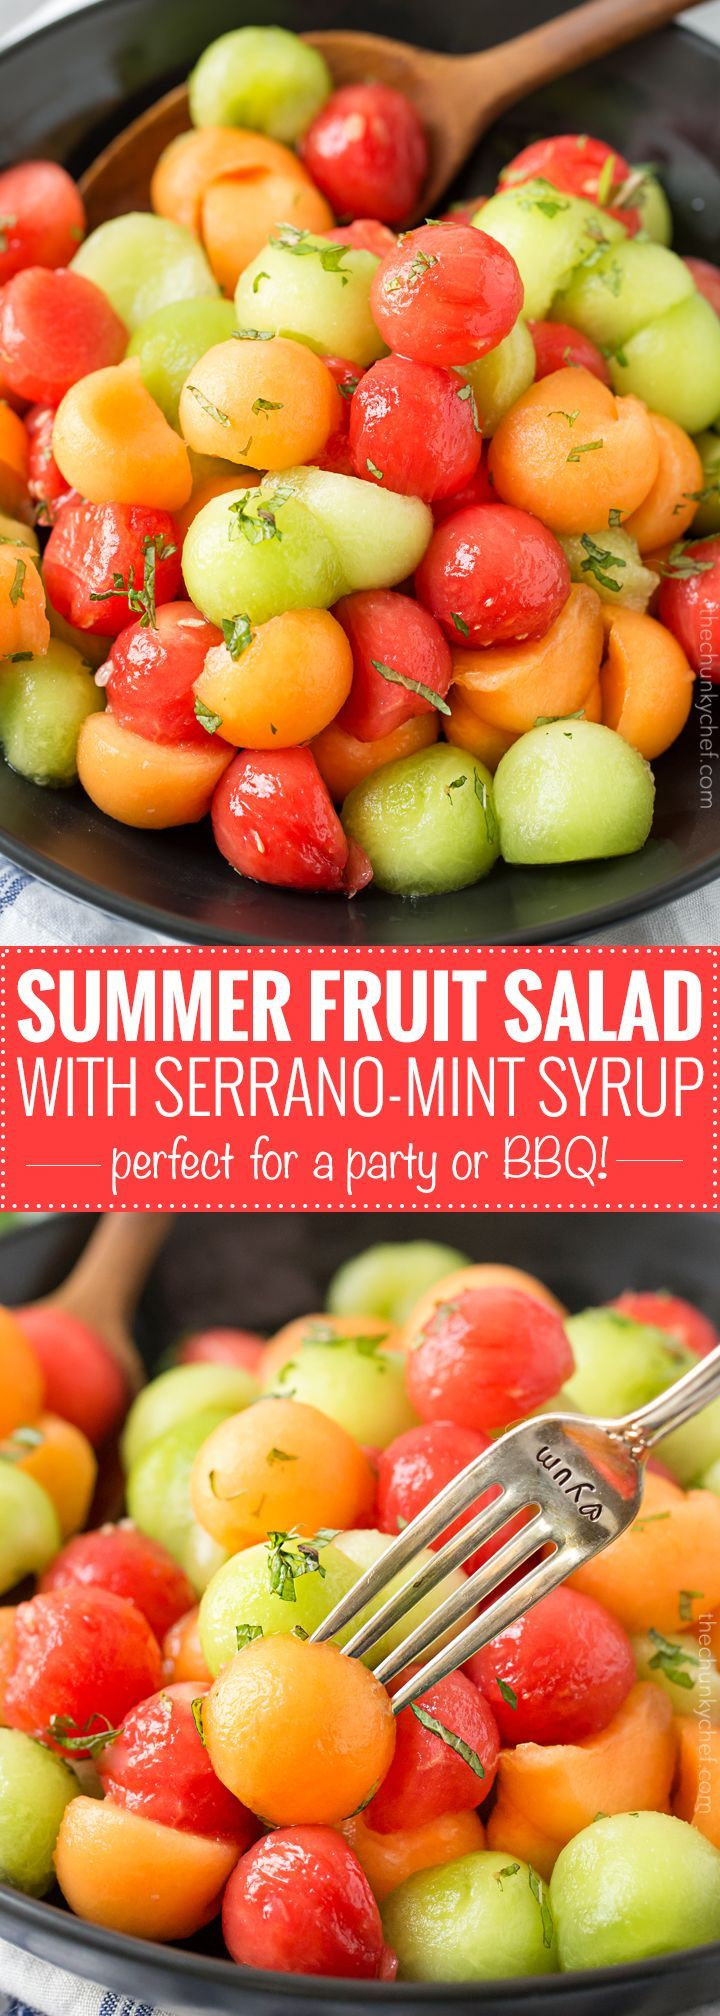 Summer Fruit Salad with Serrano Mint Syrup | A refreshing fruit salad made with a variety of summer fruits, tossed in an easy simple syrup made with mint and serrano pepper! | http://thechunkychef.com